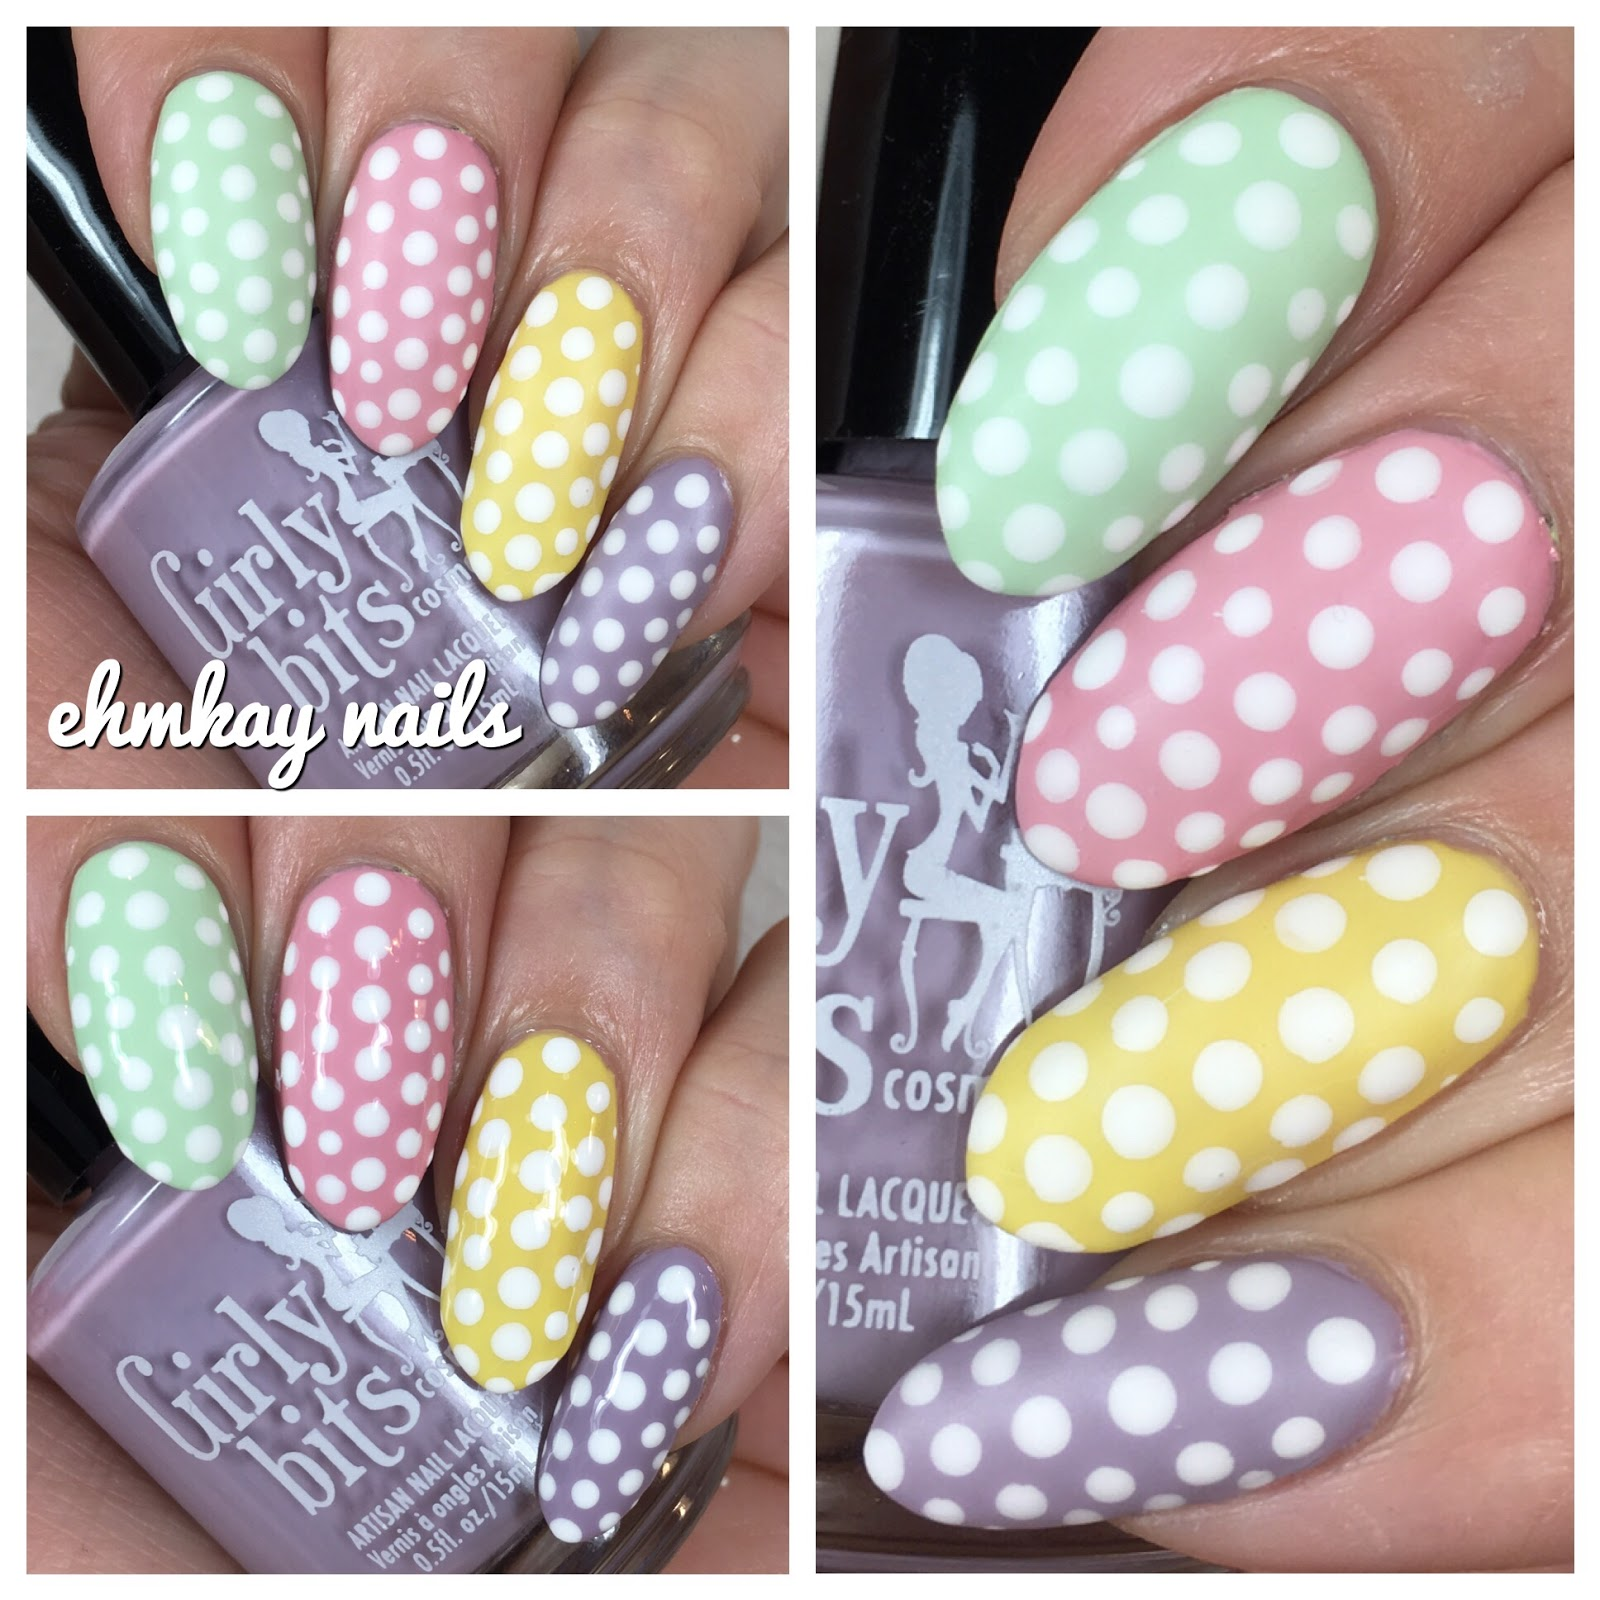 Ehmkay Nails: Easter Nail Art: Pastel Polka Dots